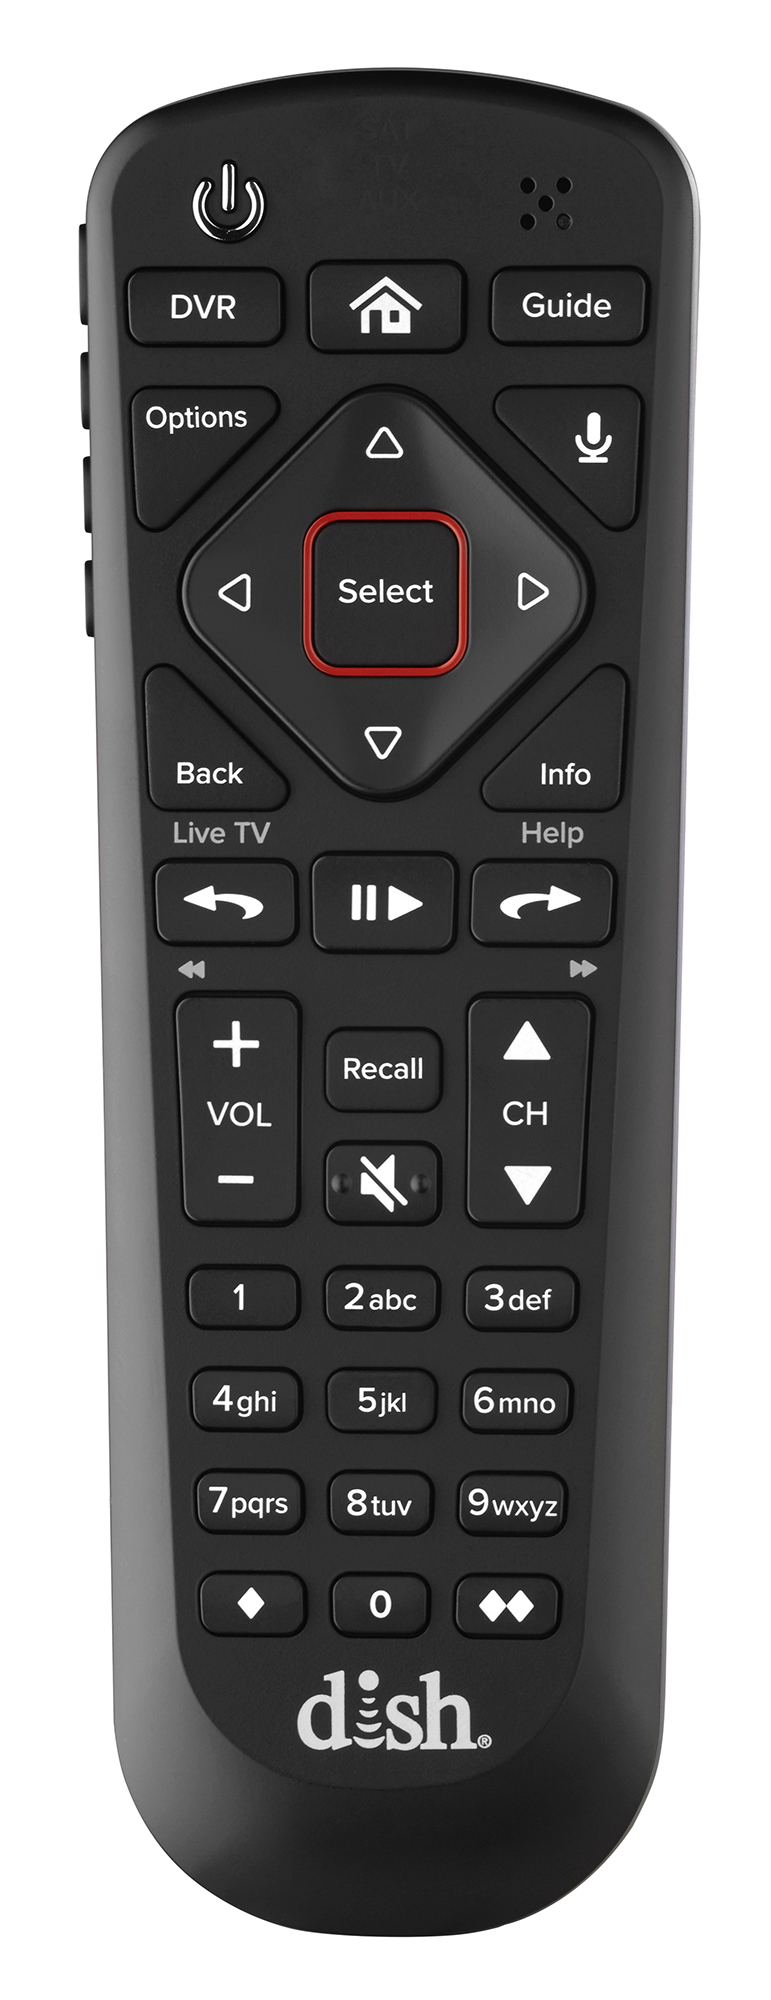 Voice Control,illuminated Buttons BRAND NEW//OEM 54.0 Dish Network Voice Remote